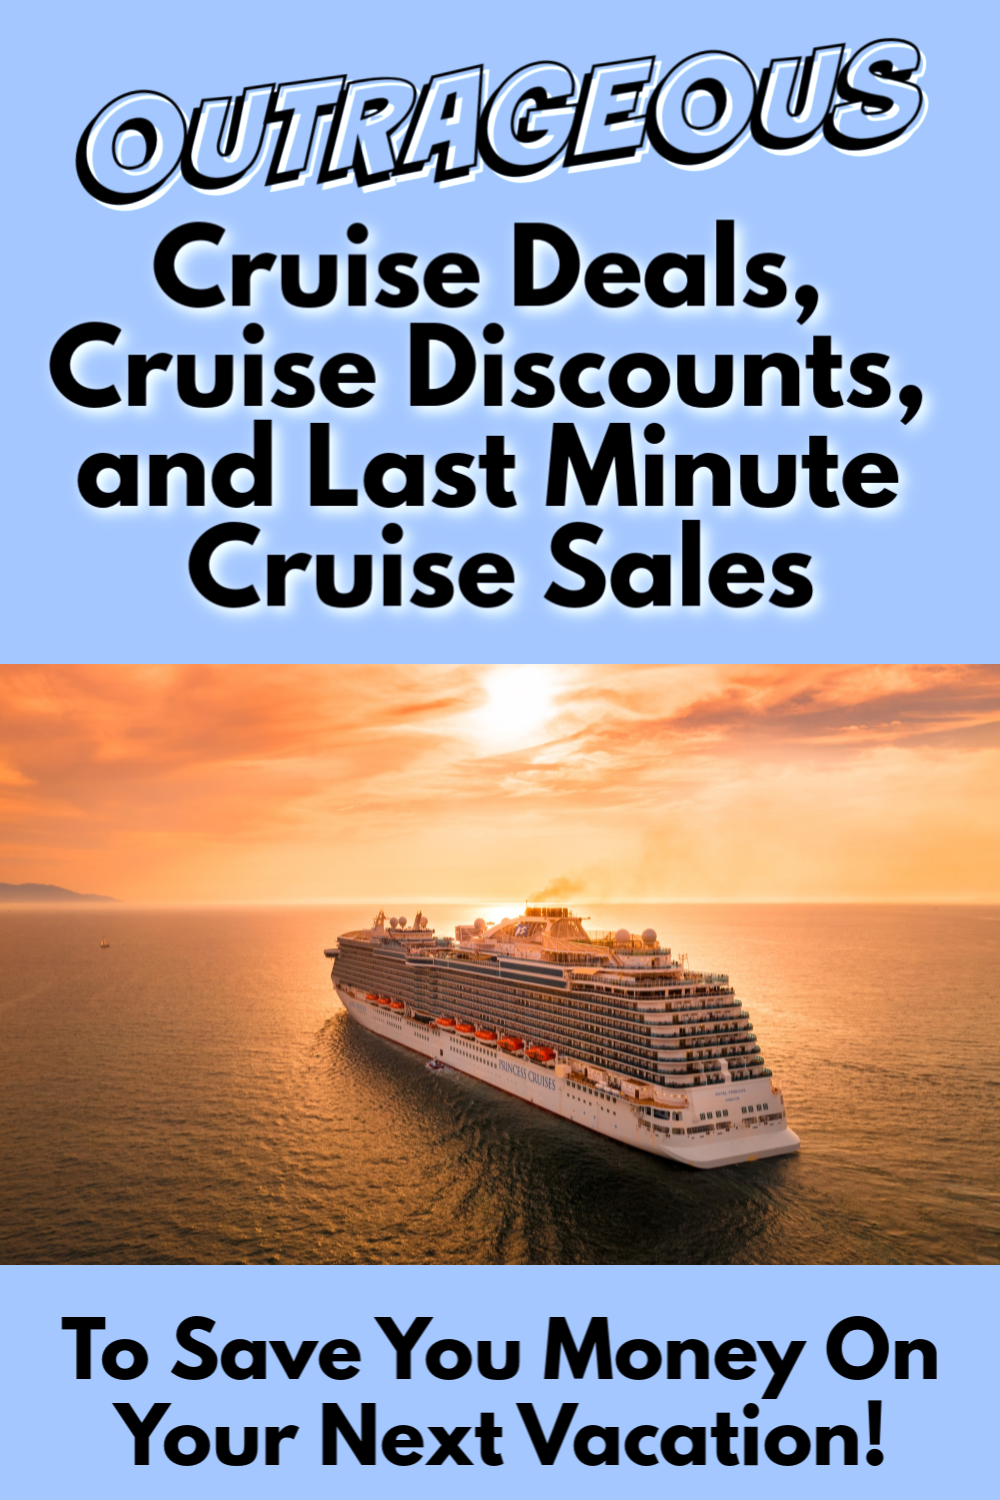 Best Cruise Deals Last Minute Cruise Deals For Low Prices In 2020 Cruise Deals Last Minute Cruise Deals Last Minute Cruises